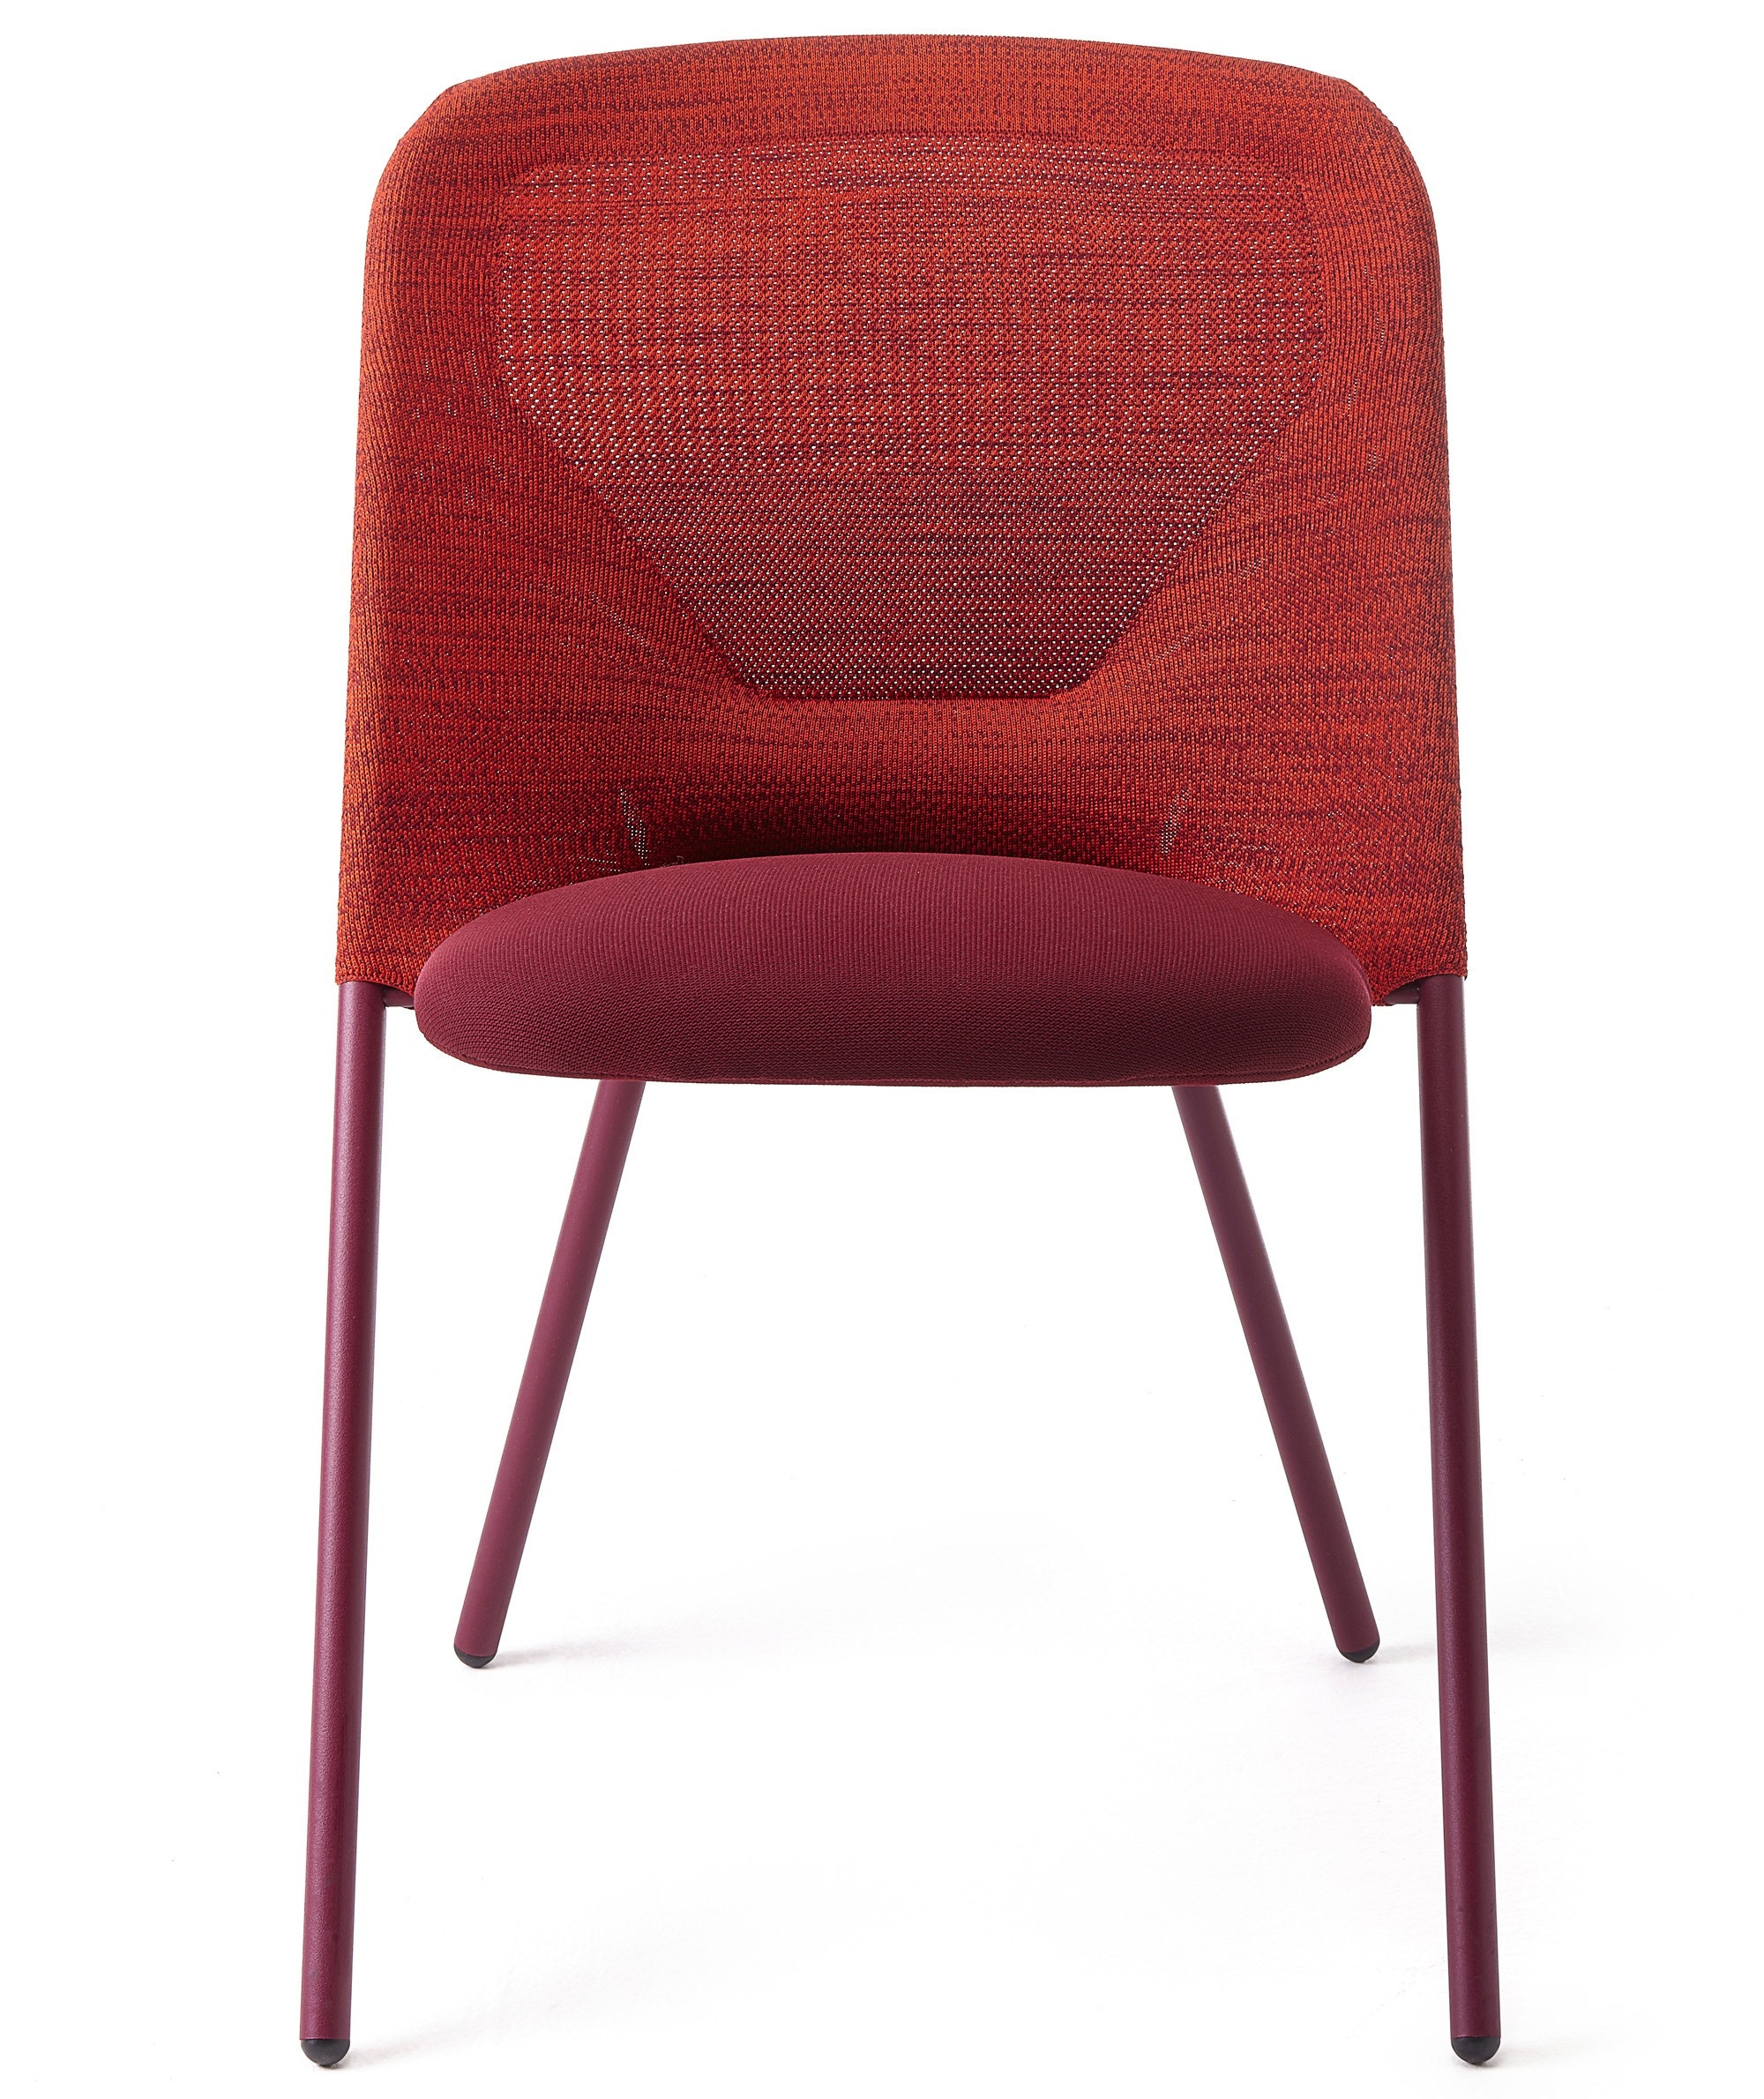 Moooi Shift Foldable Dining Chair GR Shop Canada